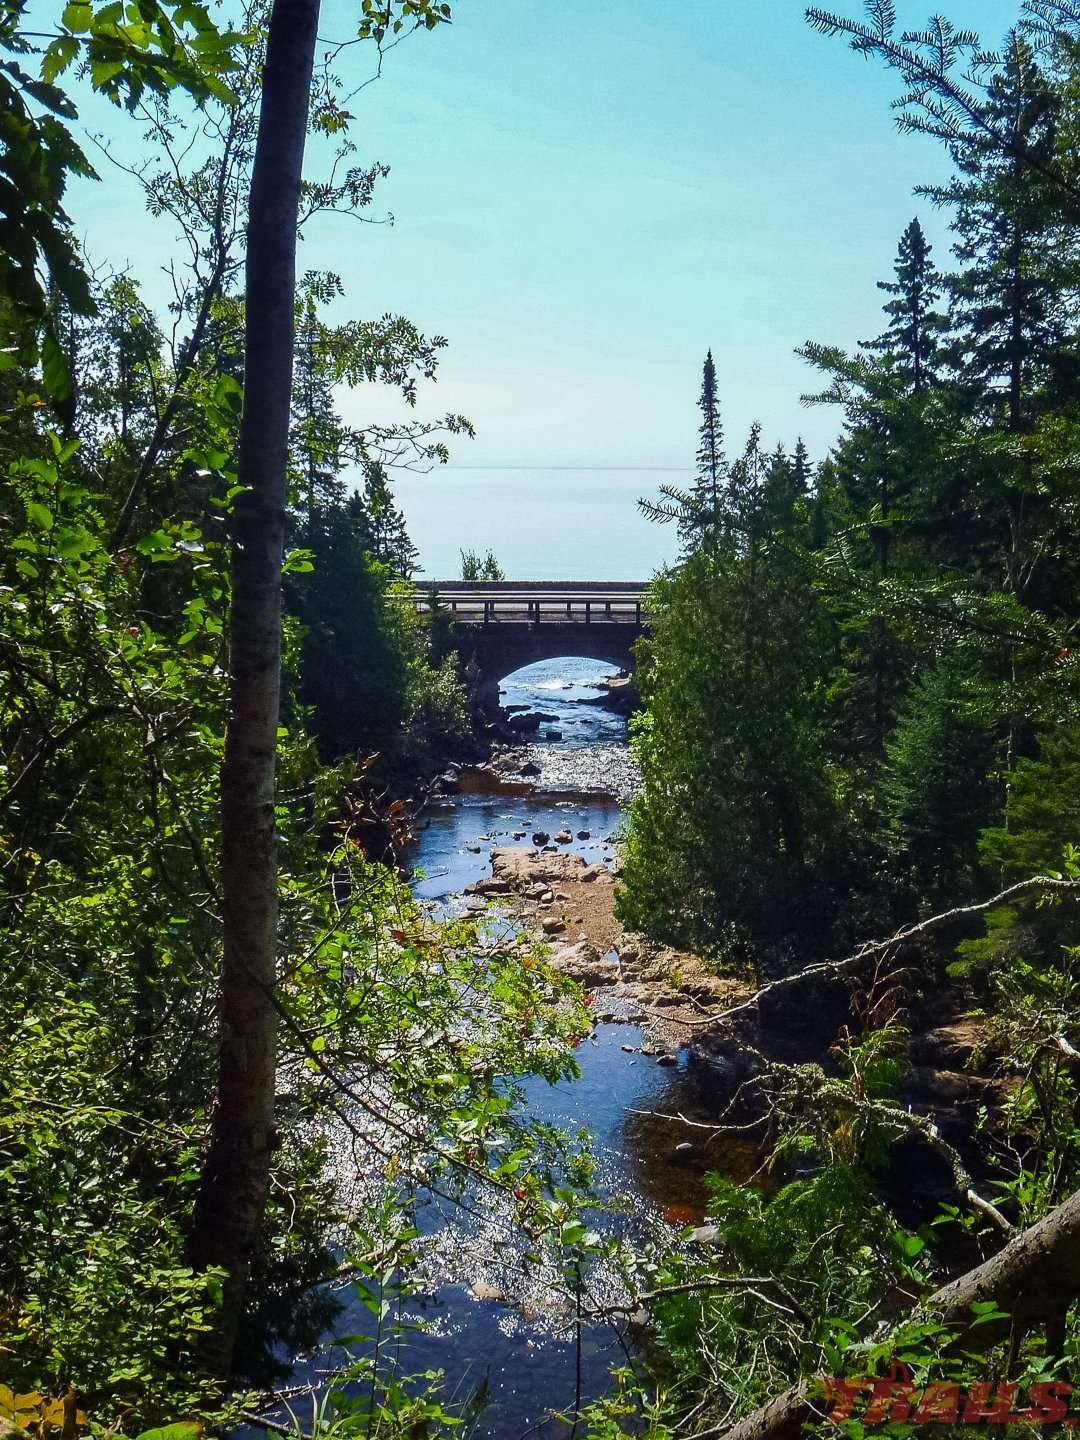 View of Lake Superior and the highway 61 bridge at Cascade River State Park